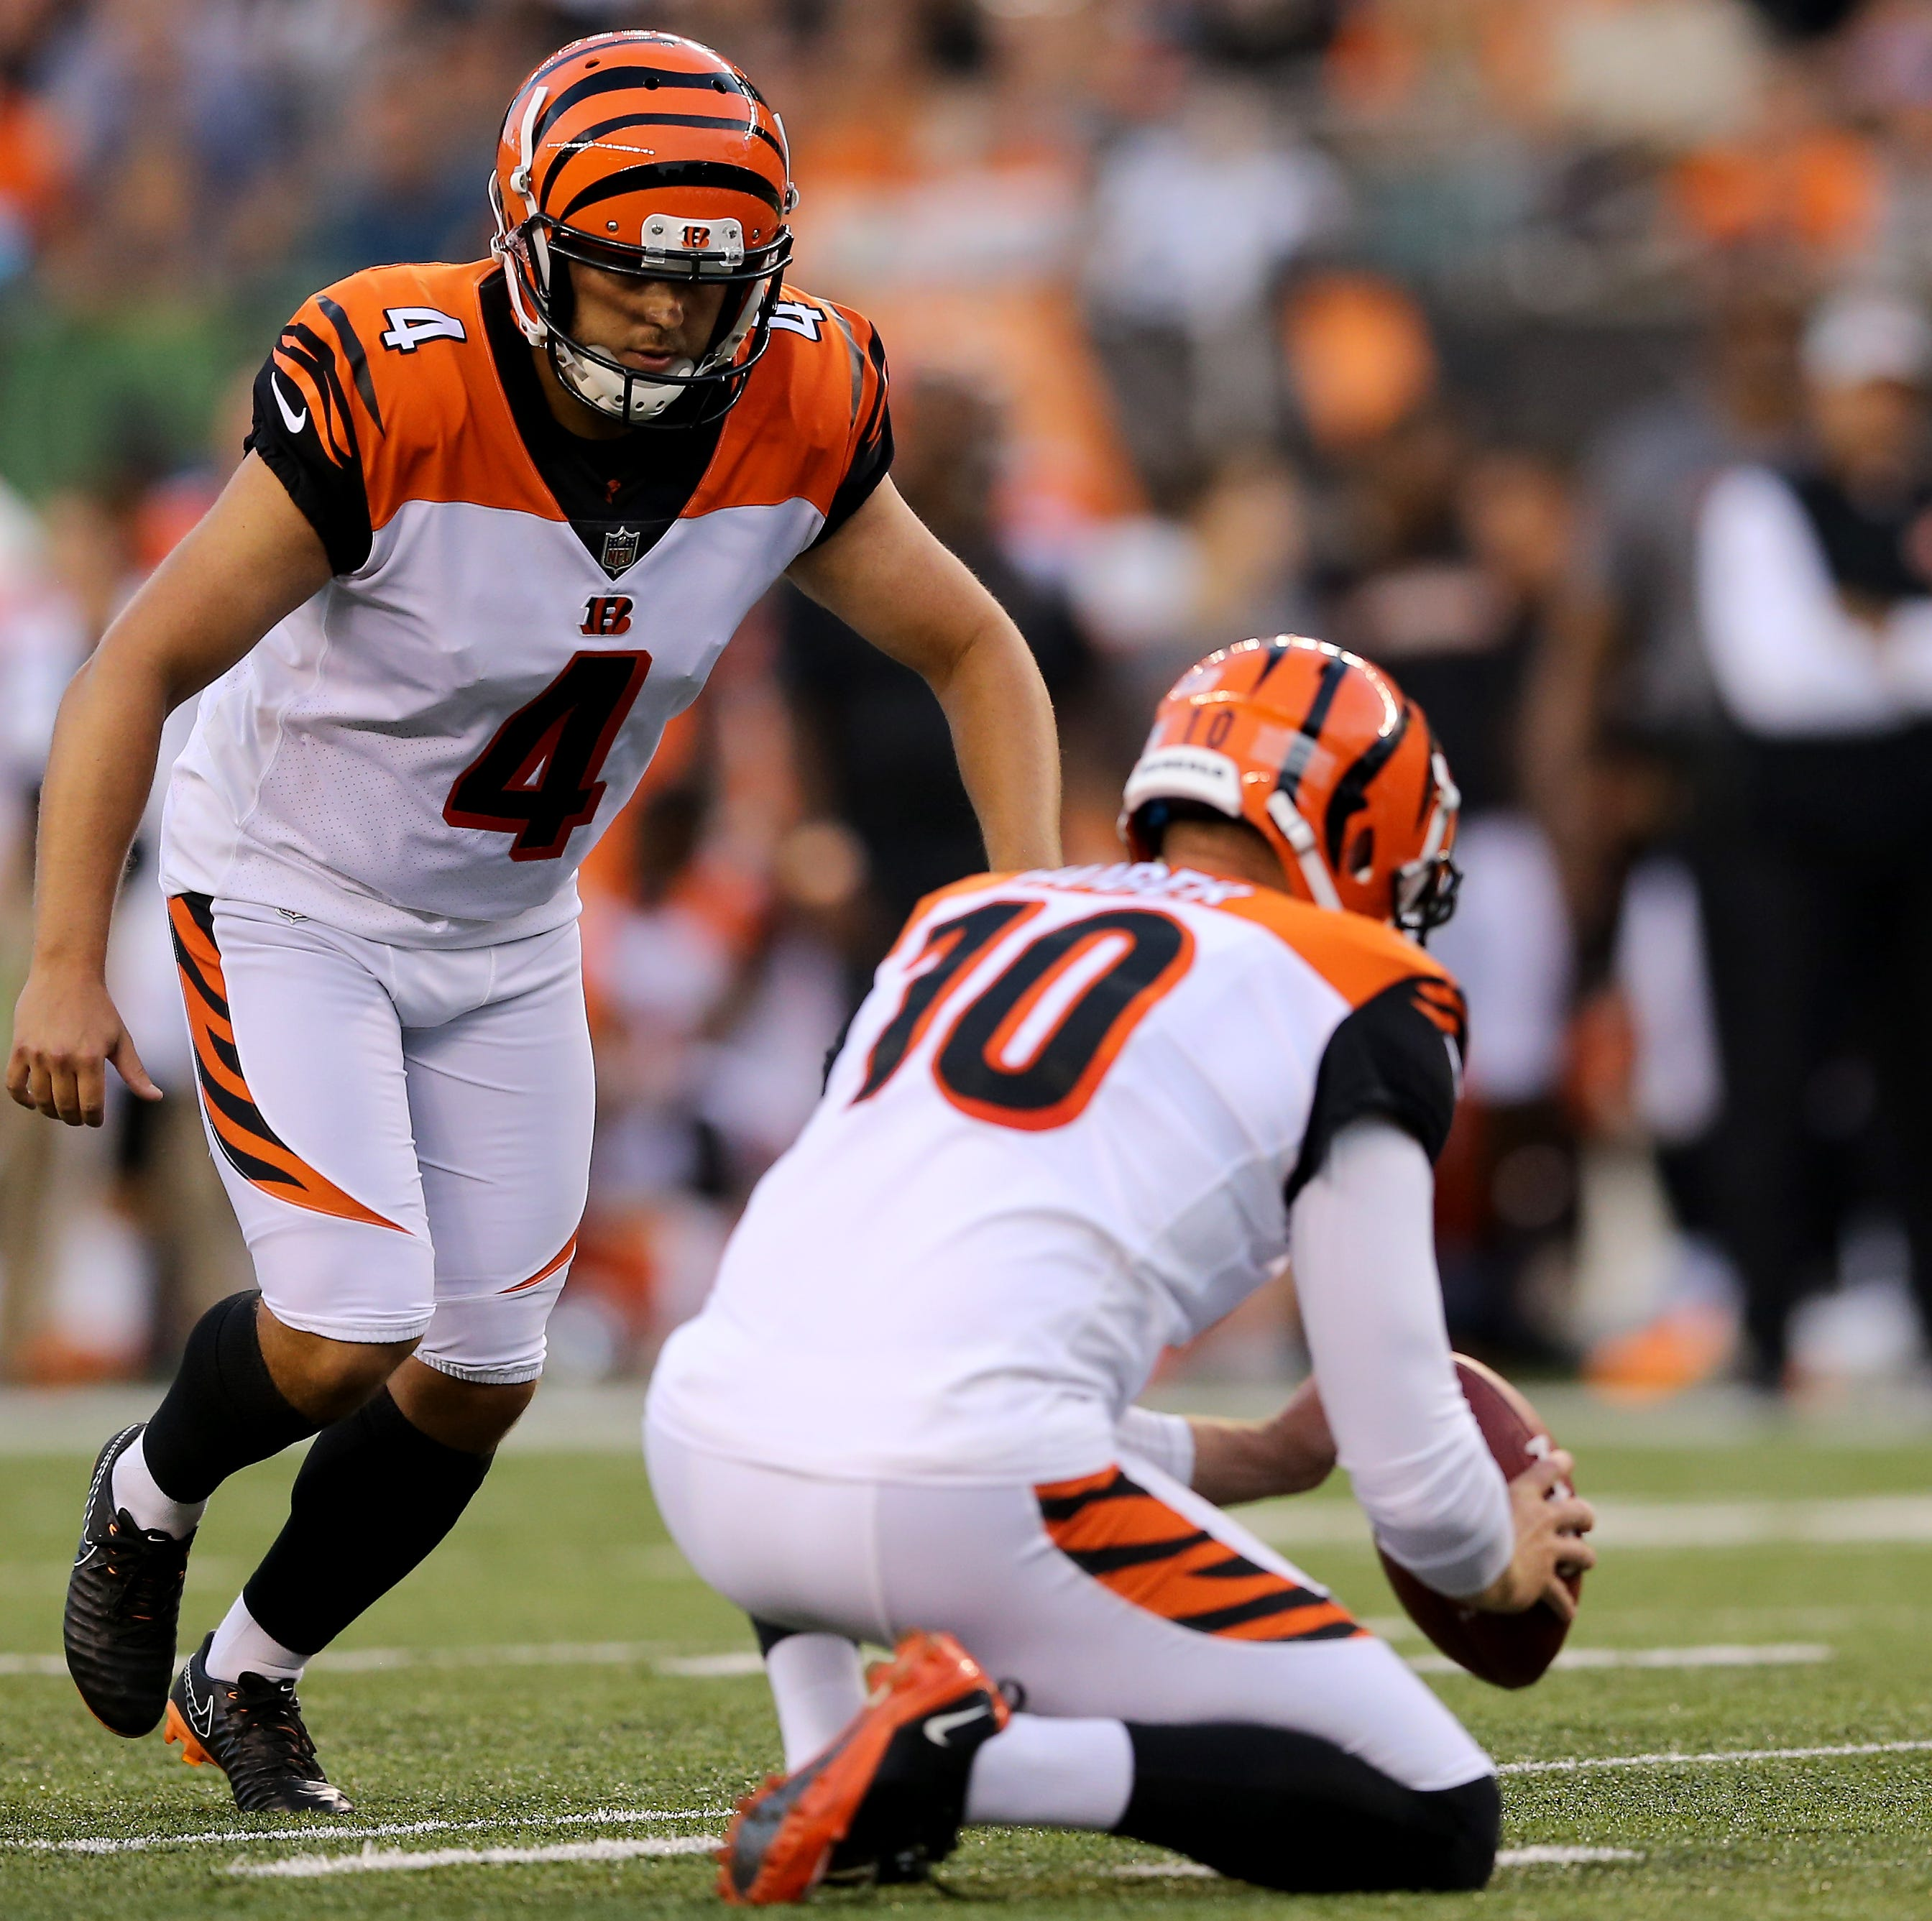 Walkthru blog: Roster battles have mattered for the Cincinnati Bengals